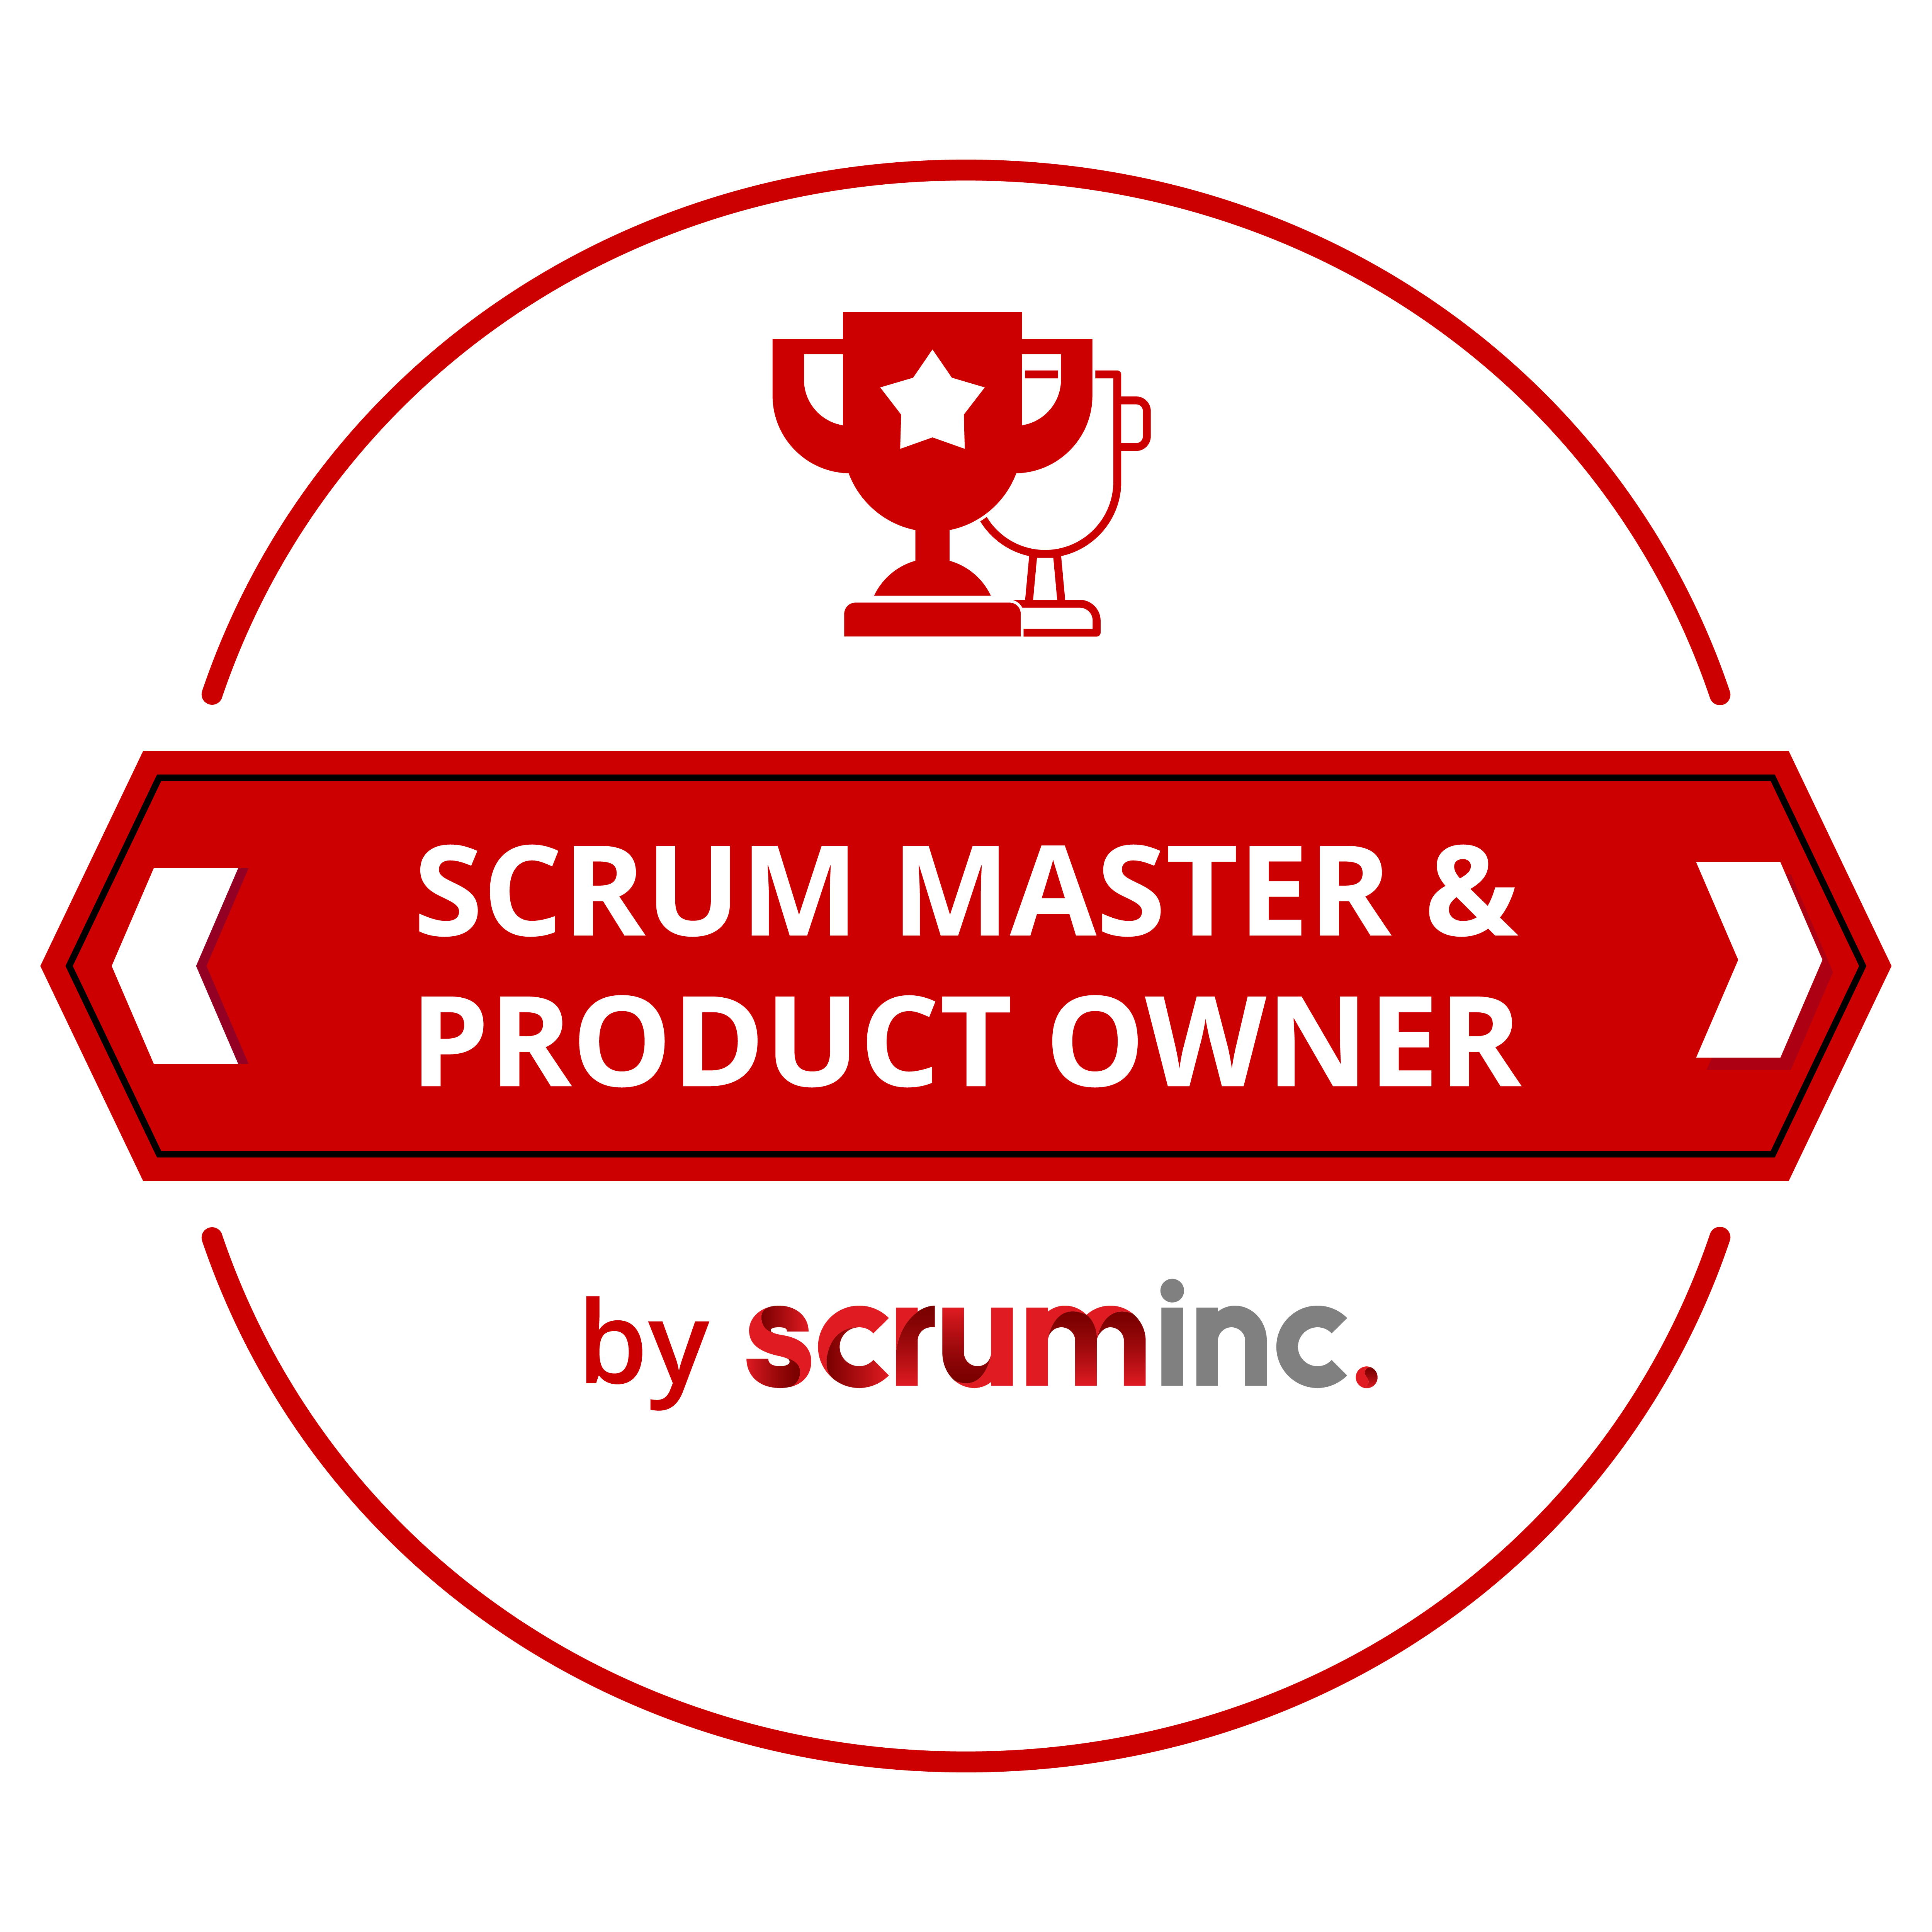 product owner & scrum master